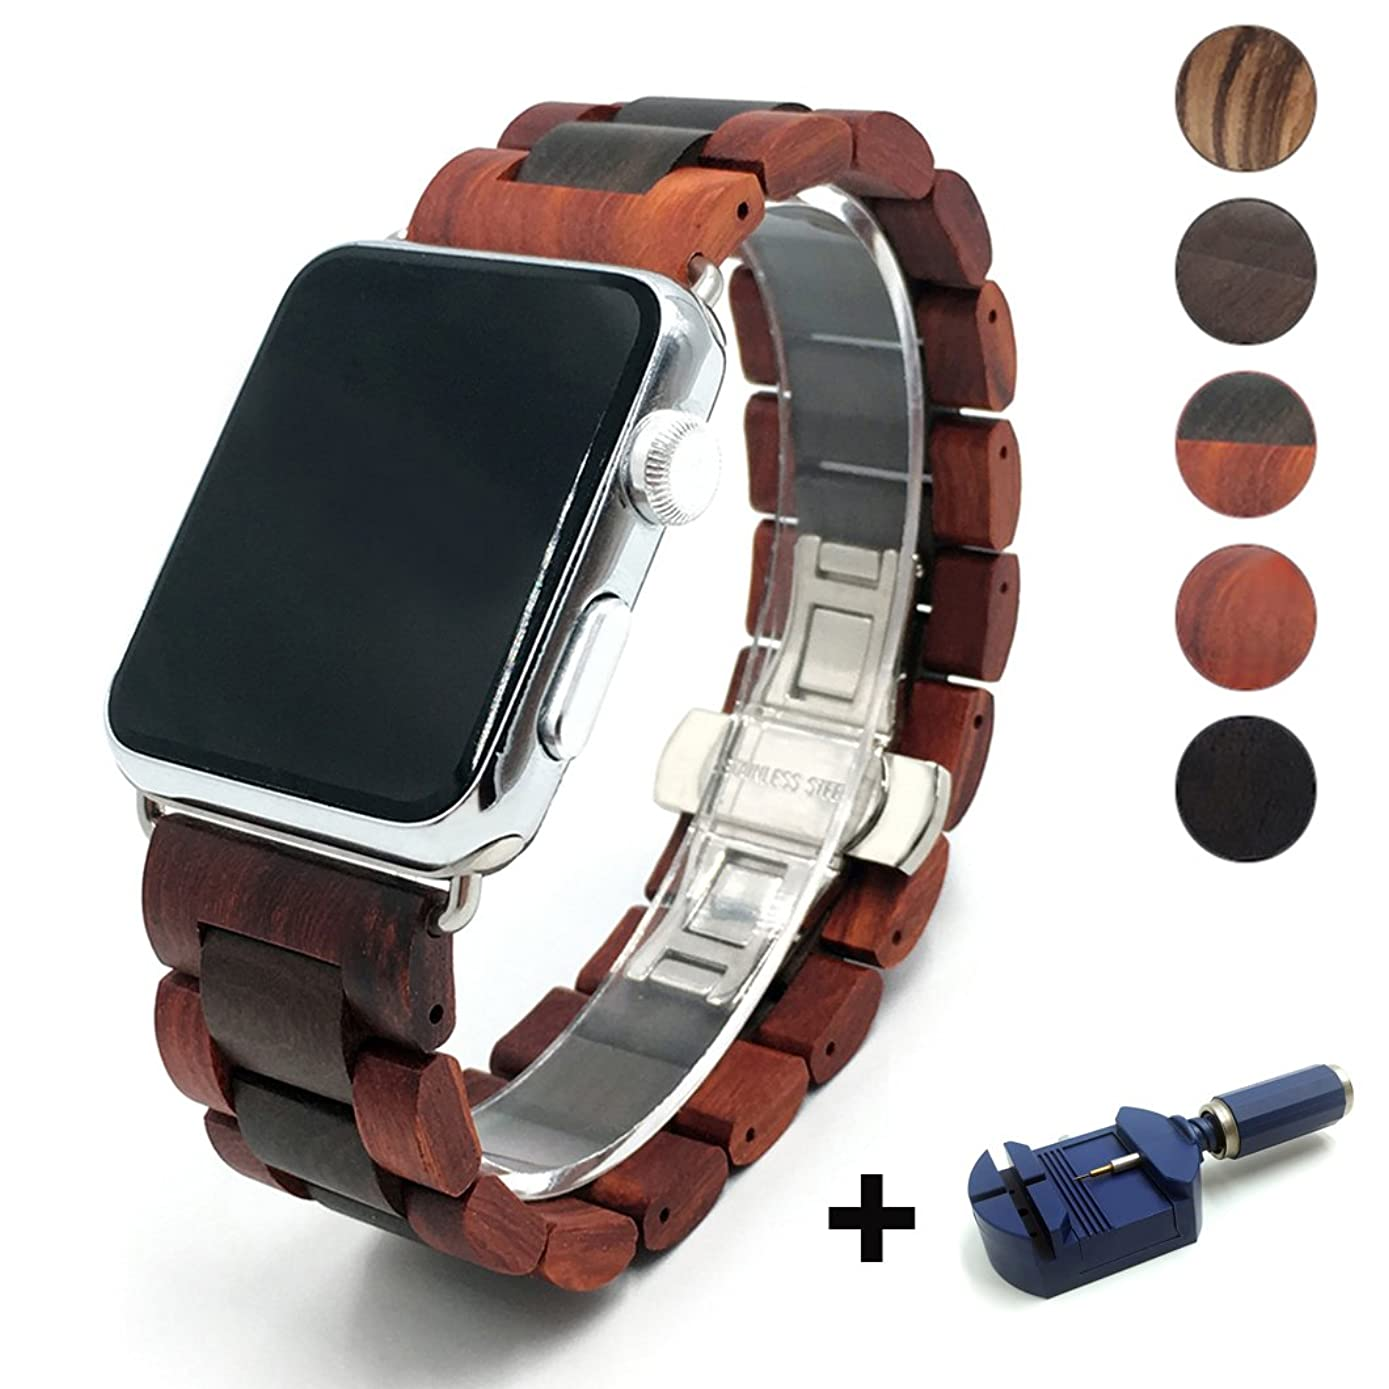 Seoaura Compatible Apple Watch Band 38mm 40mm, Natural Handmade Wooden Replacement iWatch Series 4 3 2 1 Sports Strap Wristband - Link Remover as a Gift (Red Brown, 38mm/40mm)